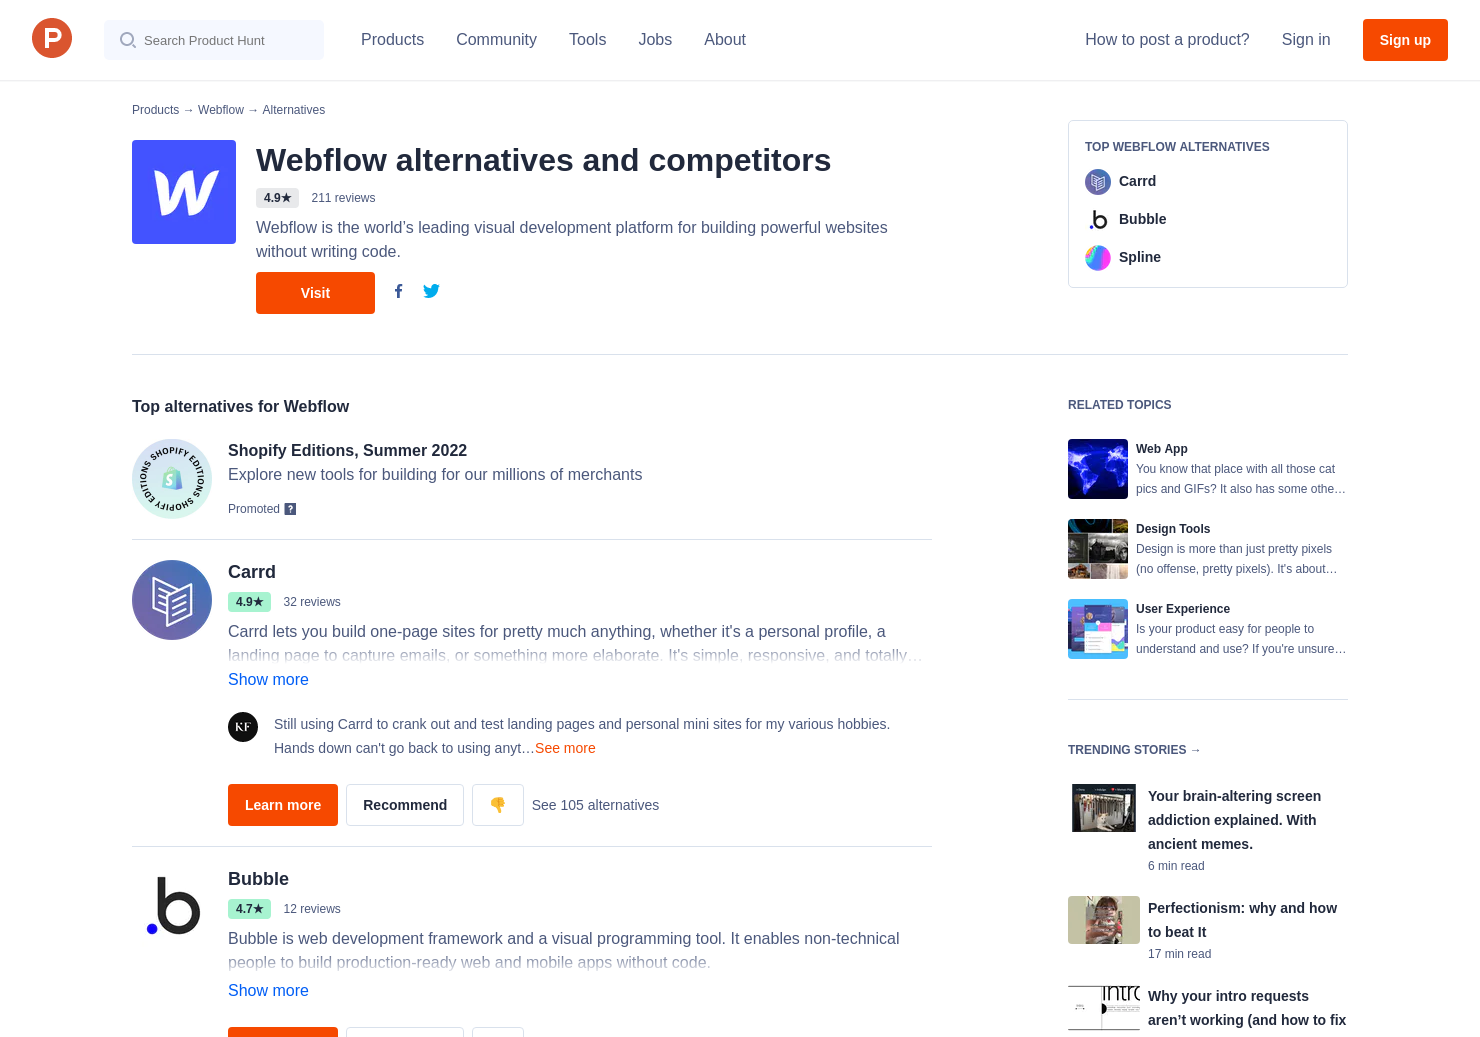 27 Alternatives to Webflow | Product Hunt